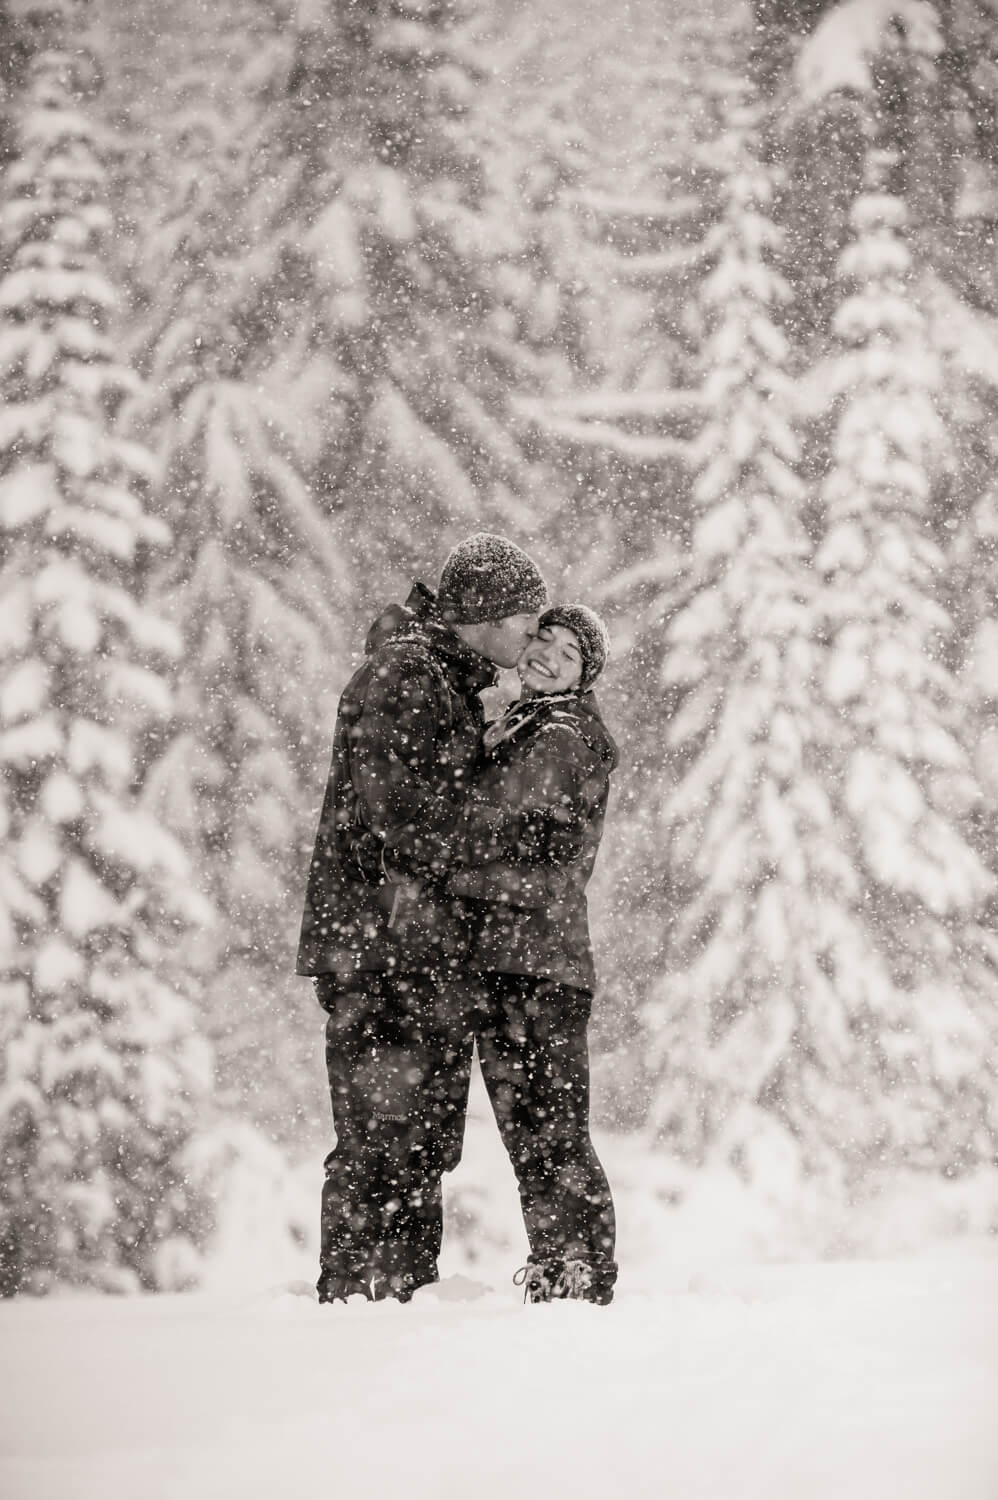 kiss-snow-engagements.jpg